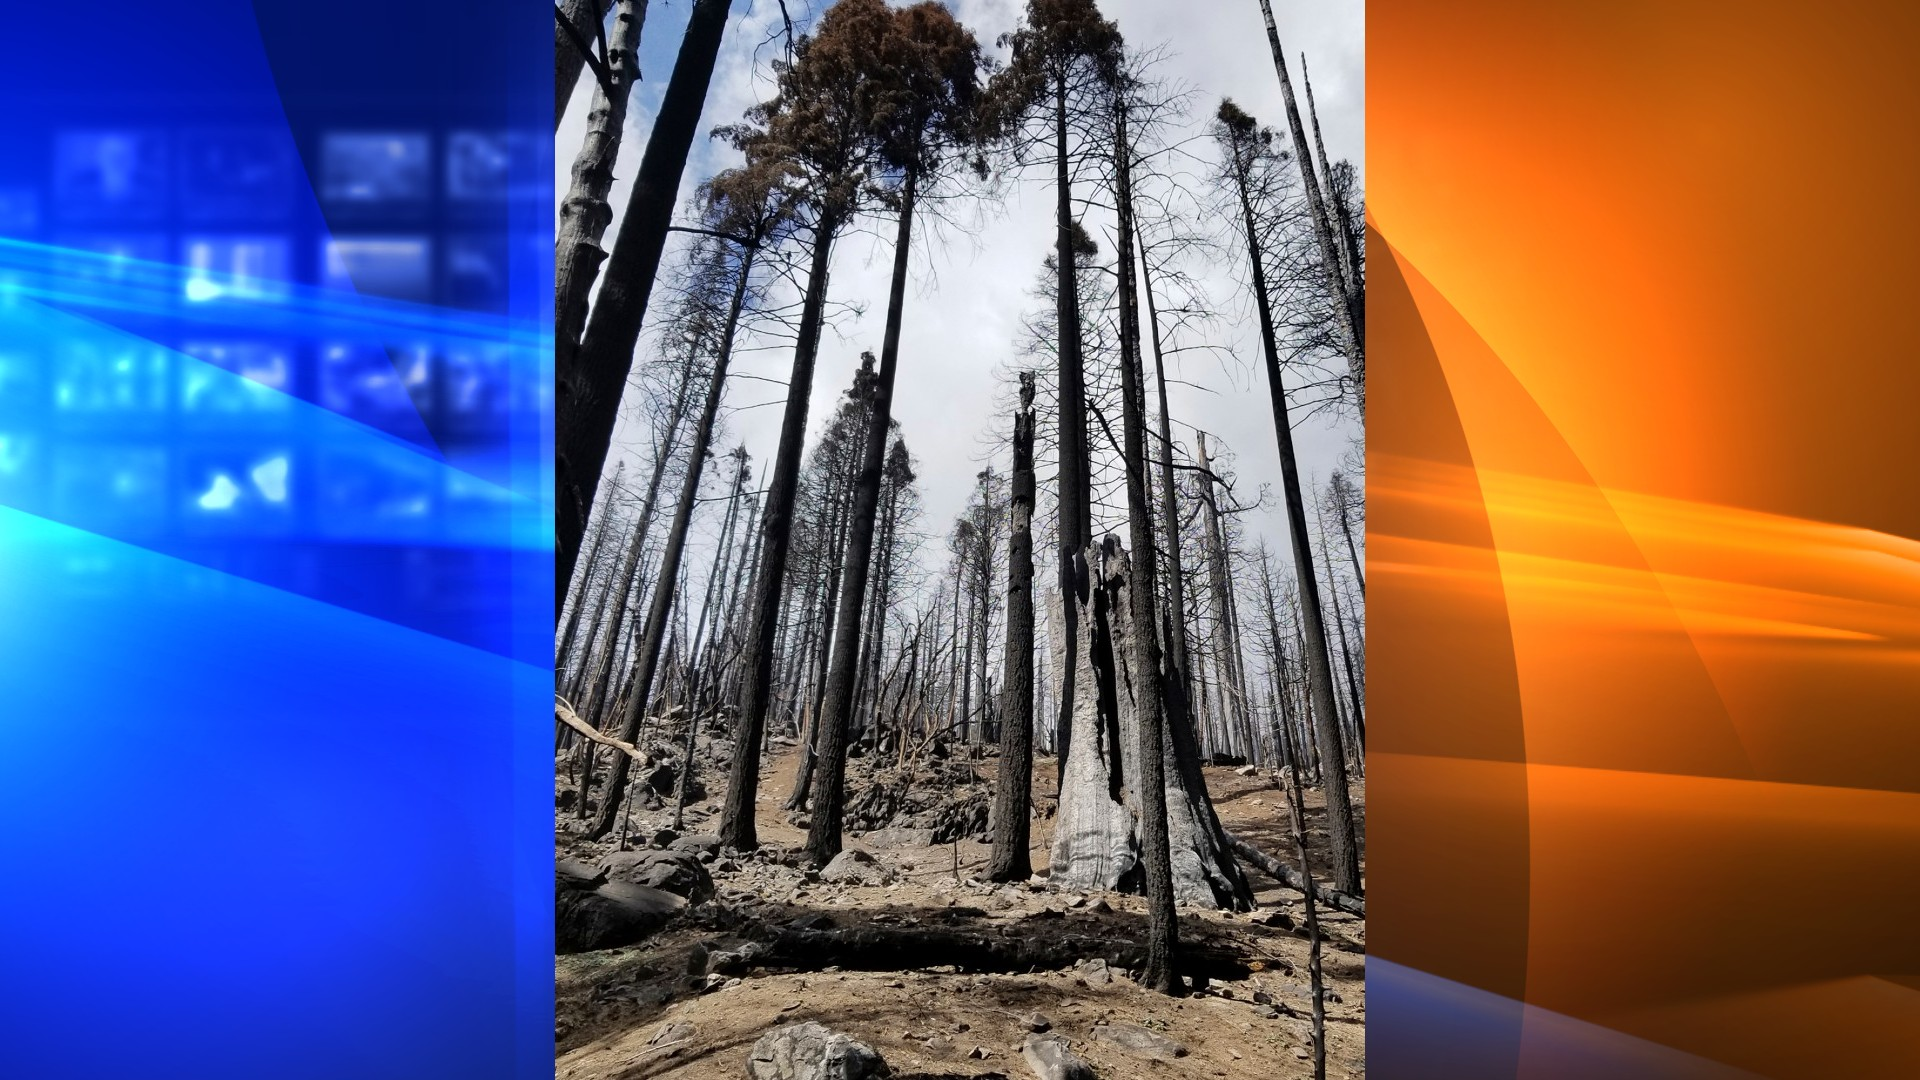 In this April 22, 2021, photo provided by Sequoia & Kings Canyon National Parks, is a stand of burned sequoias in the Board Camp Grove in Sequoia National Park, Calif., following the 2020 Castle Fire. At least a tenth of the world's mature giant sequoias were destroyed by a single California wildfire that tore through the southern Sierra Nevada last year, according to a draft report prepared by scientists with the National Park Service. The Visalia Times-Delta newspaper obtained a copy of the report that describes catastrophic destruction from the Castle Fire, which charred 273 square miles of timber in Sequoia National Park. (Tony Caprio/Sequoia & Kings Canyon National Parks via AP)